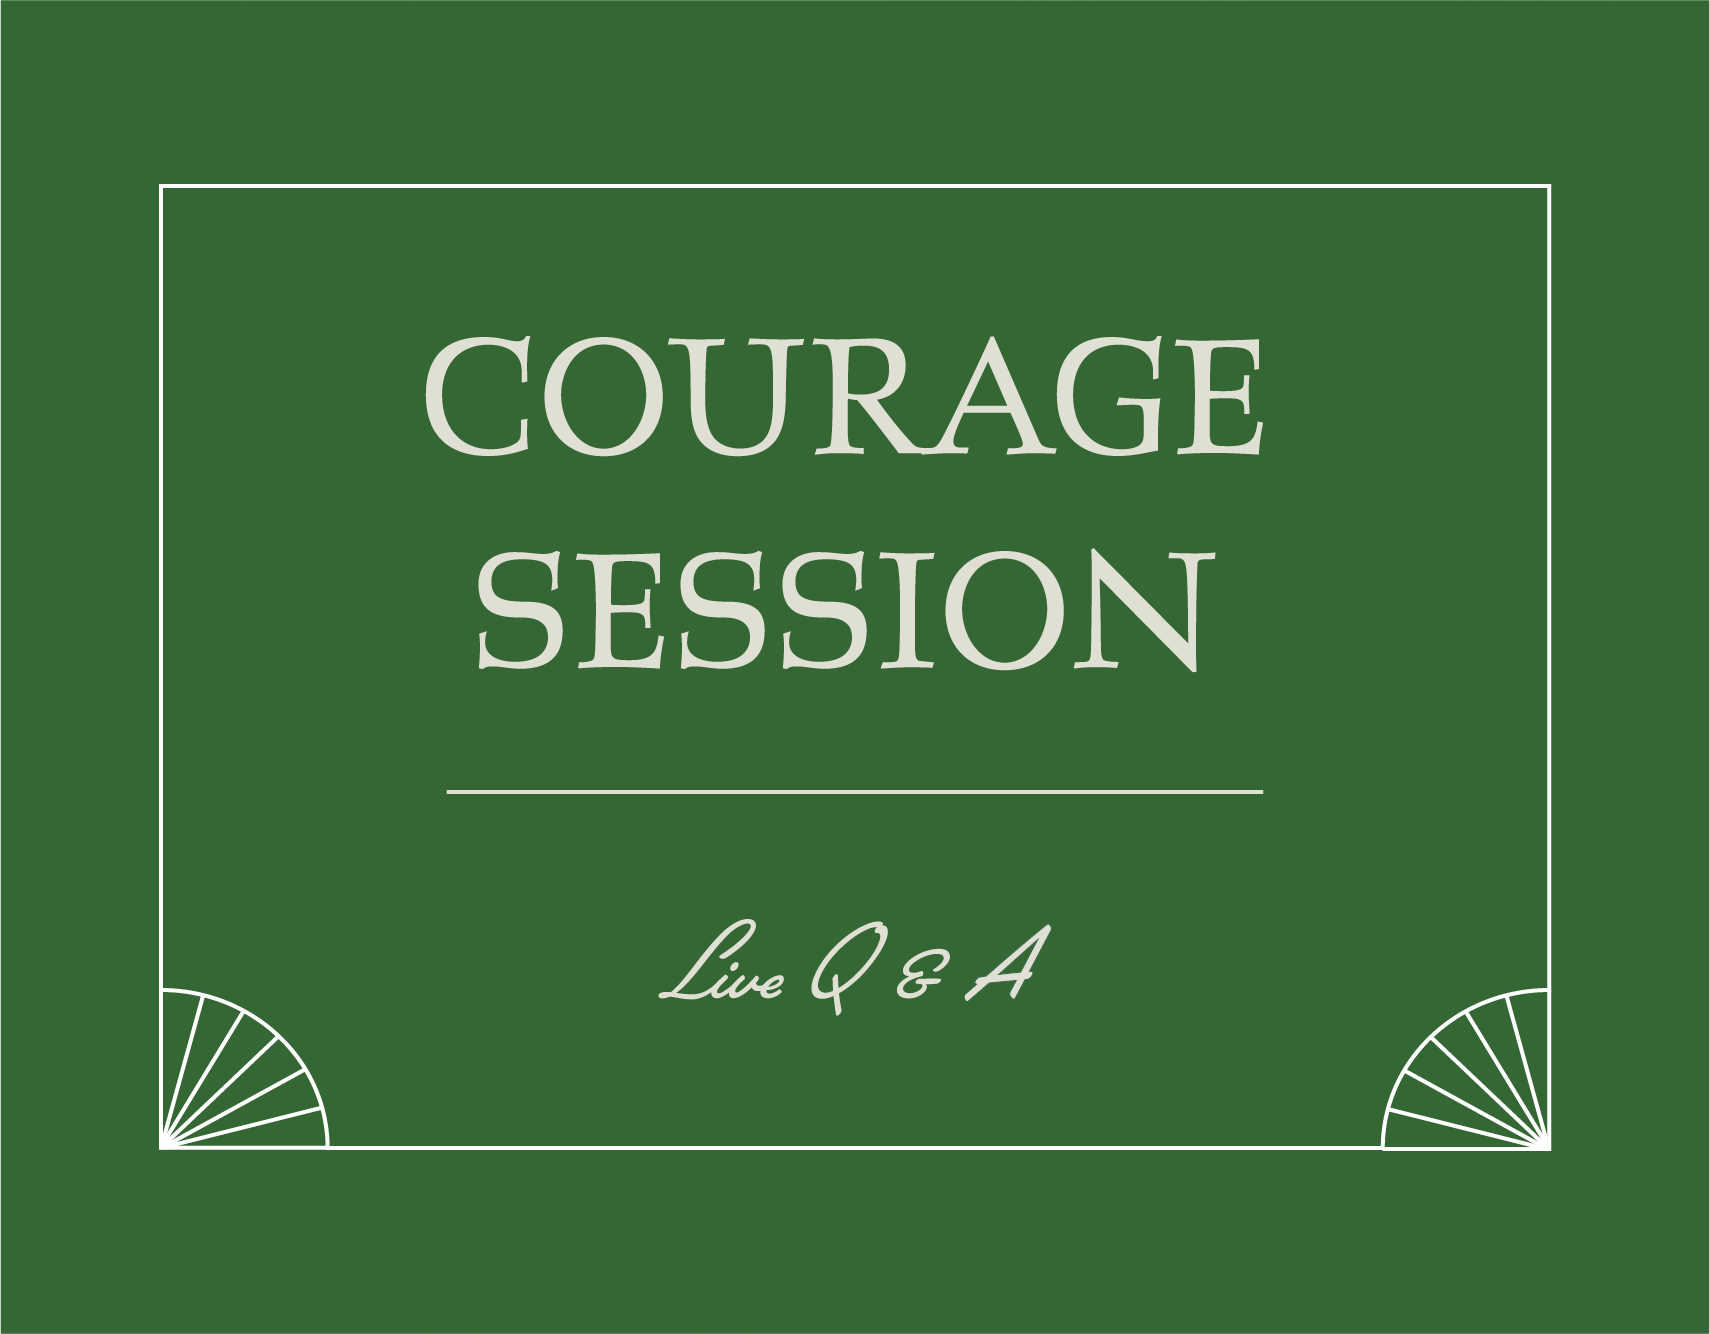 Courage Session Live Q&A cover art